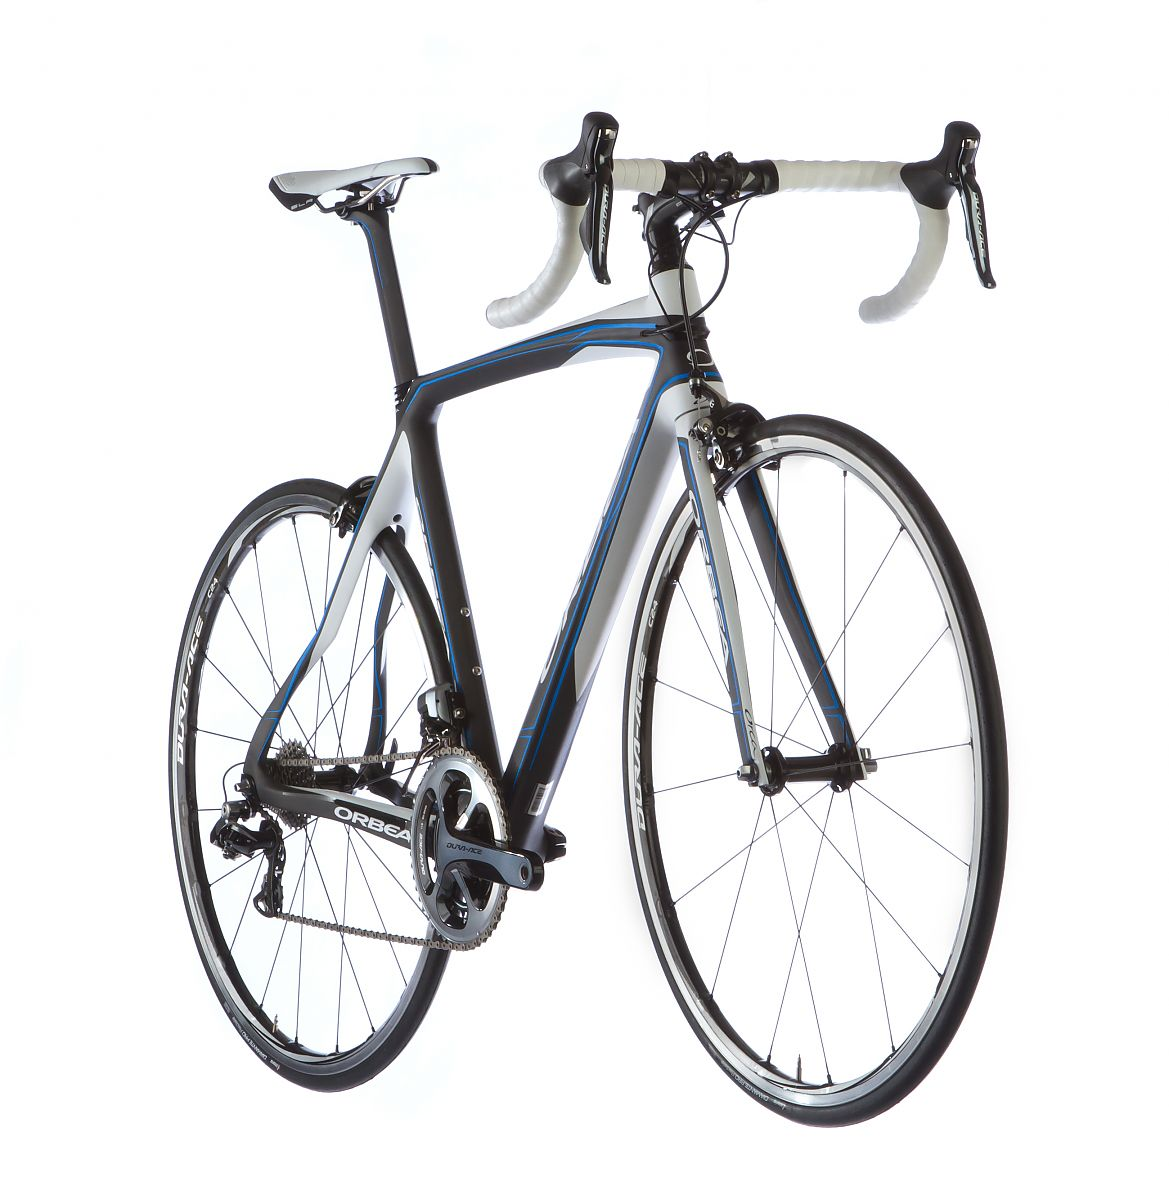 new bikes from giant look orbea ridley trek and wilier bicycle retailer and industry news. Black Bedroom Furniture Sets. Home Design Ideas